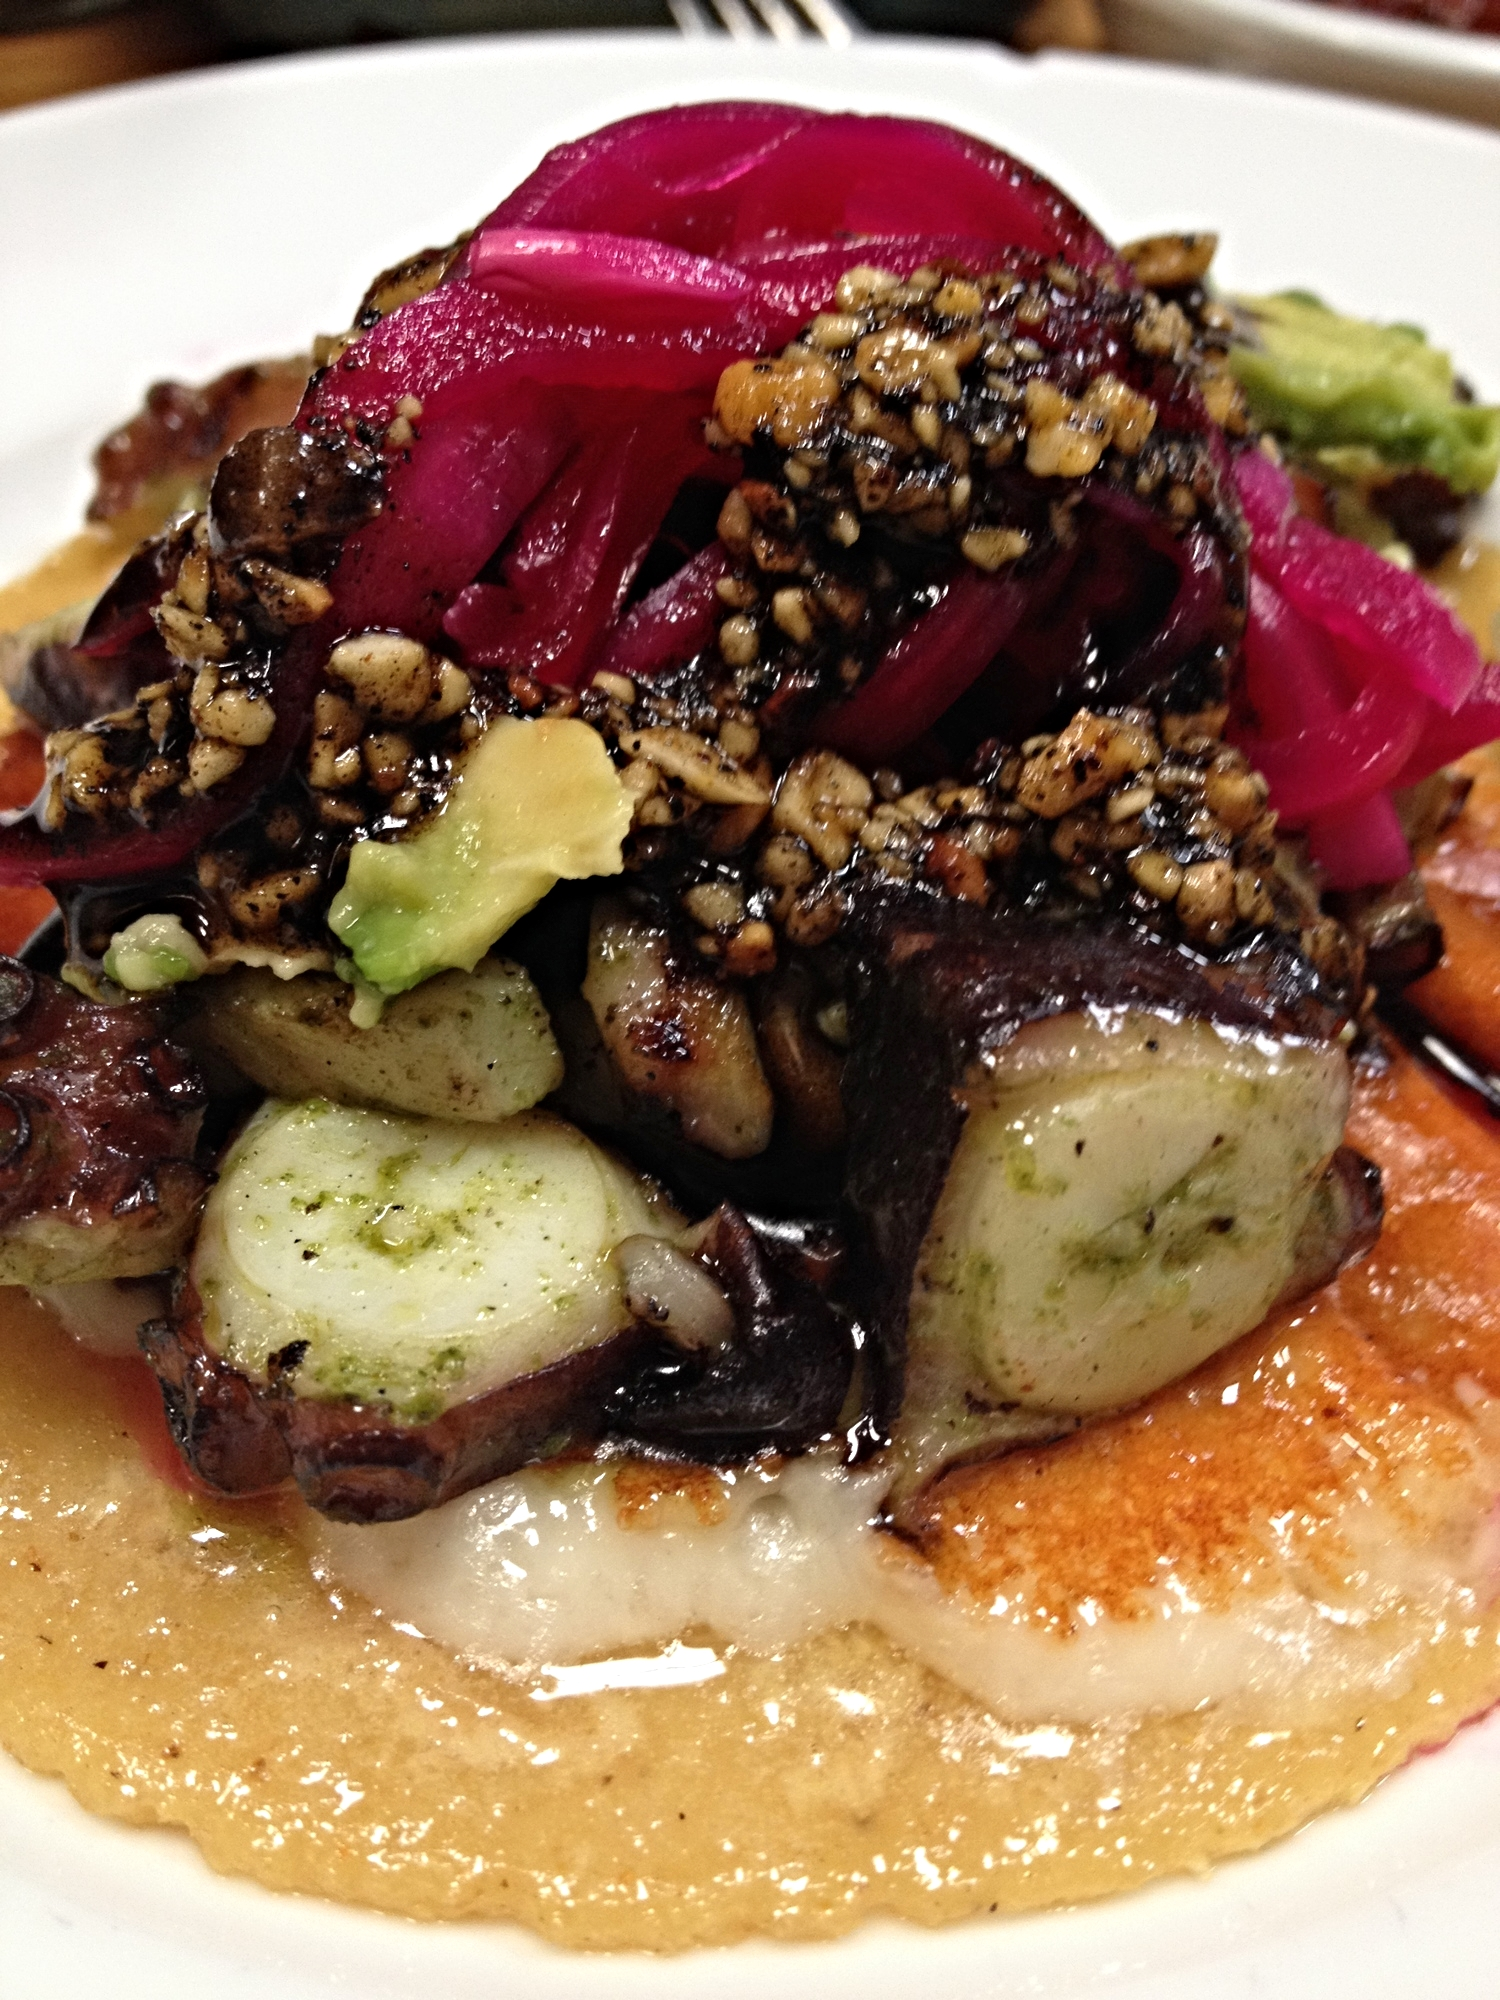 Charcoal Grilled Octopus with chile de arbol, peanuts, jack cheese, and avocado